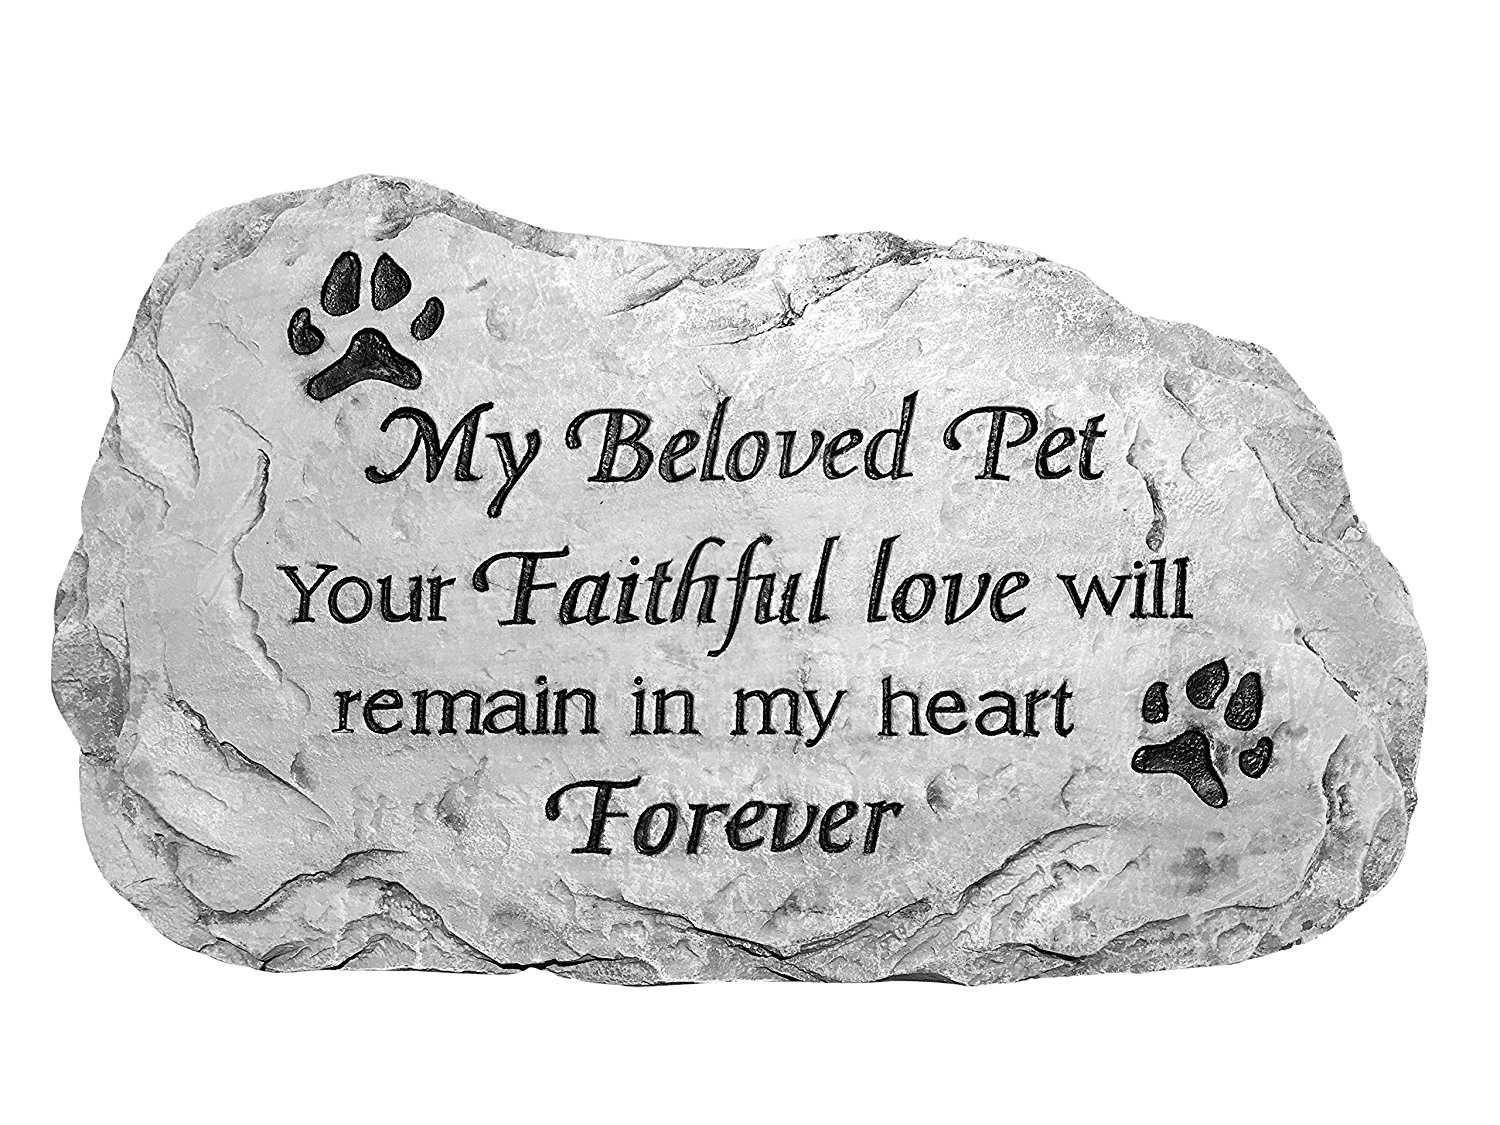 Pet Memorial Stone Plaque - Flagstone - Pet Memorial Marker Reads My Beloved Pet Your Faithful Love Will Remain in My Heart Forever (Flagstone)